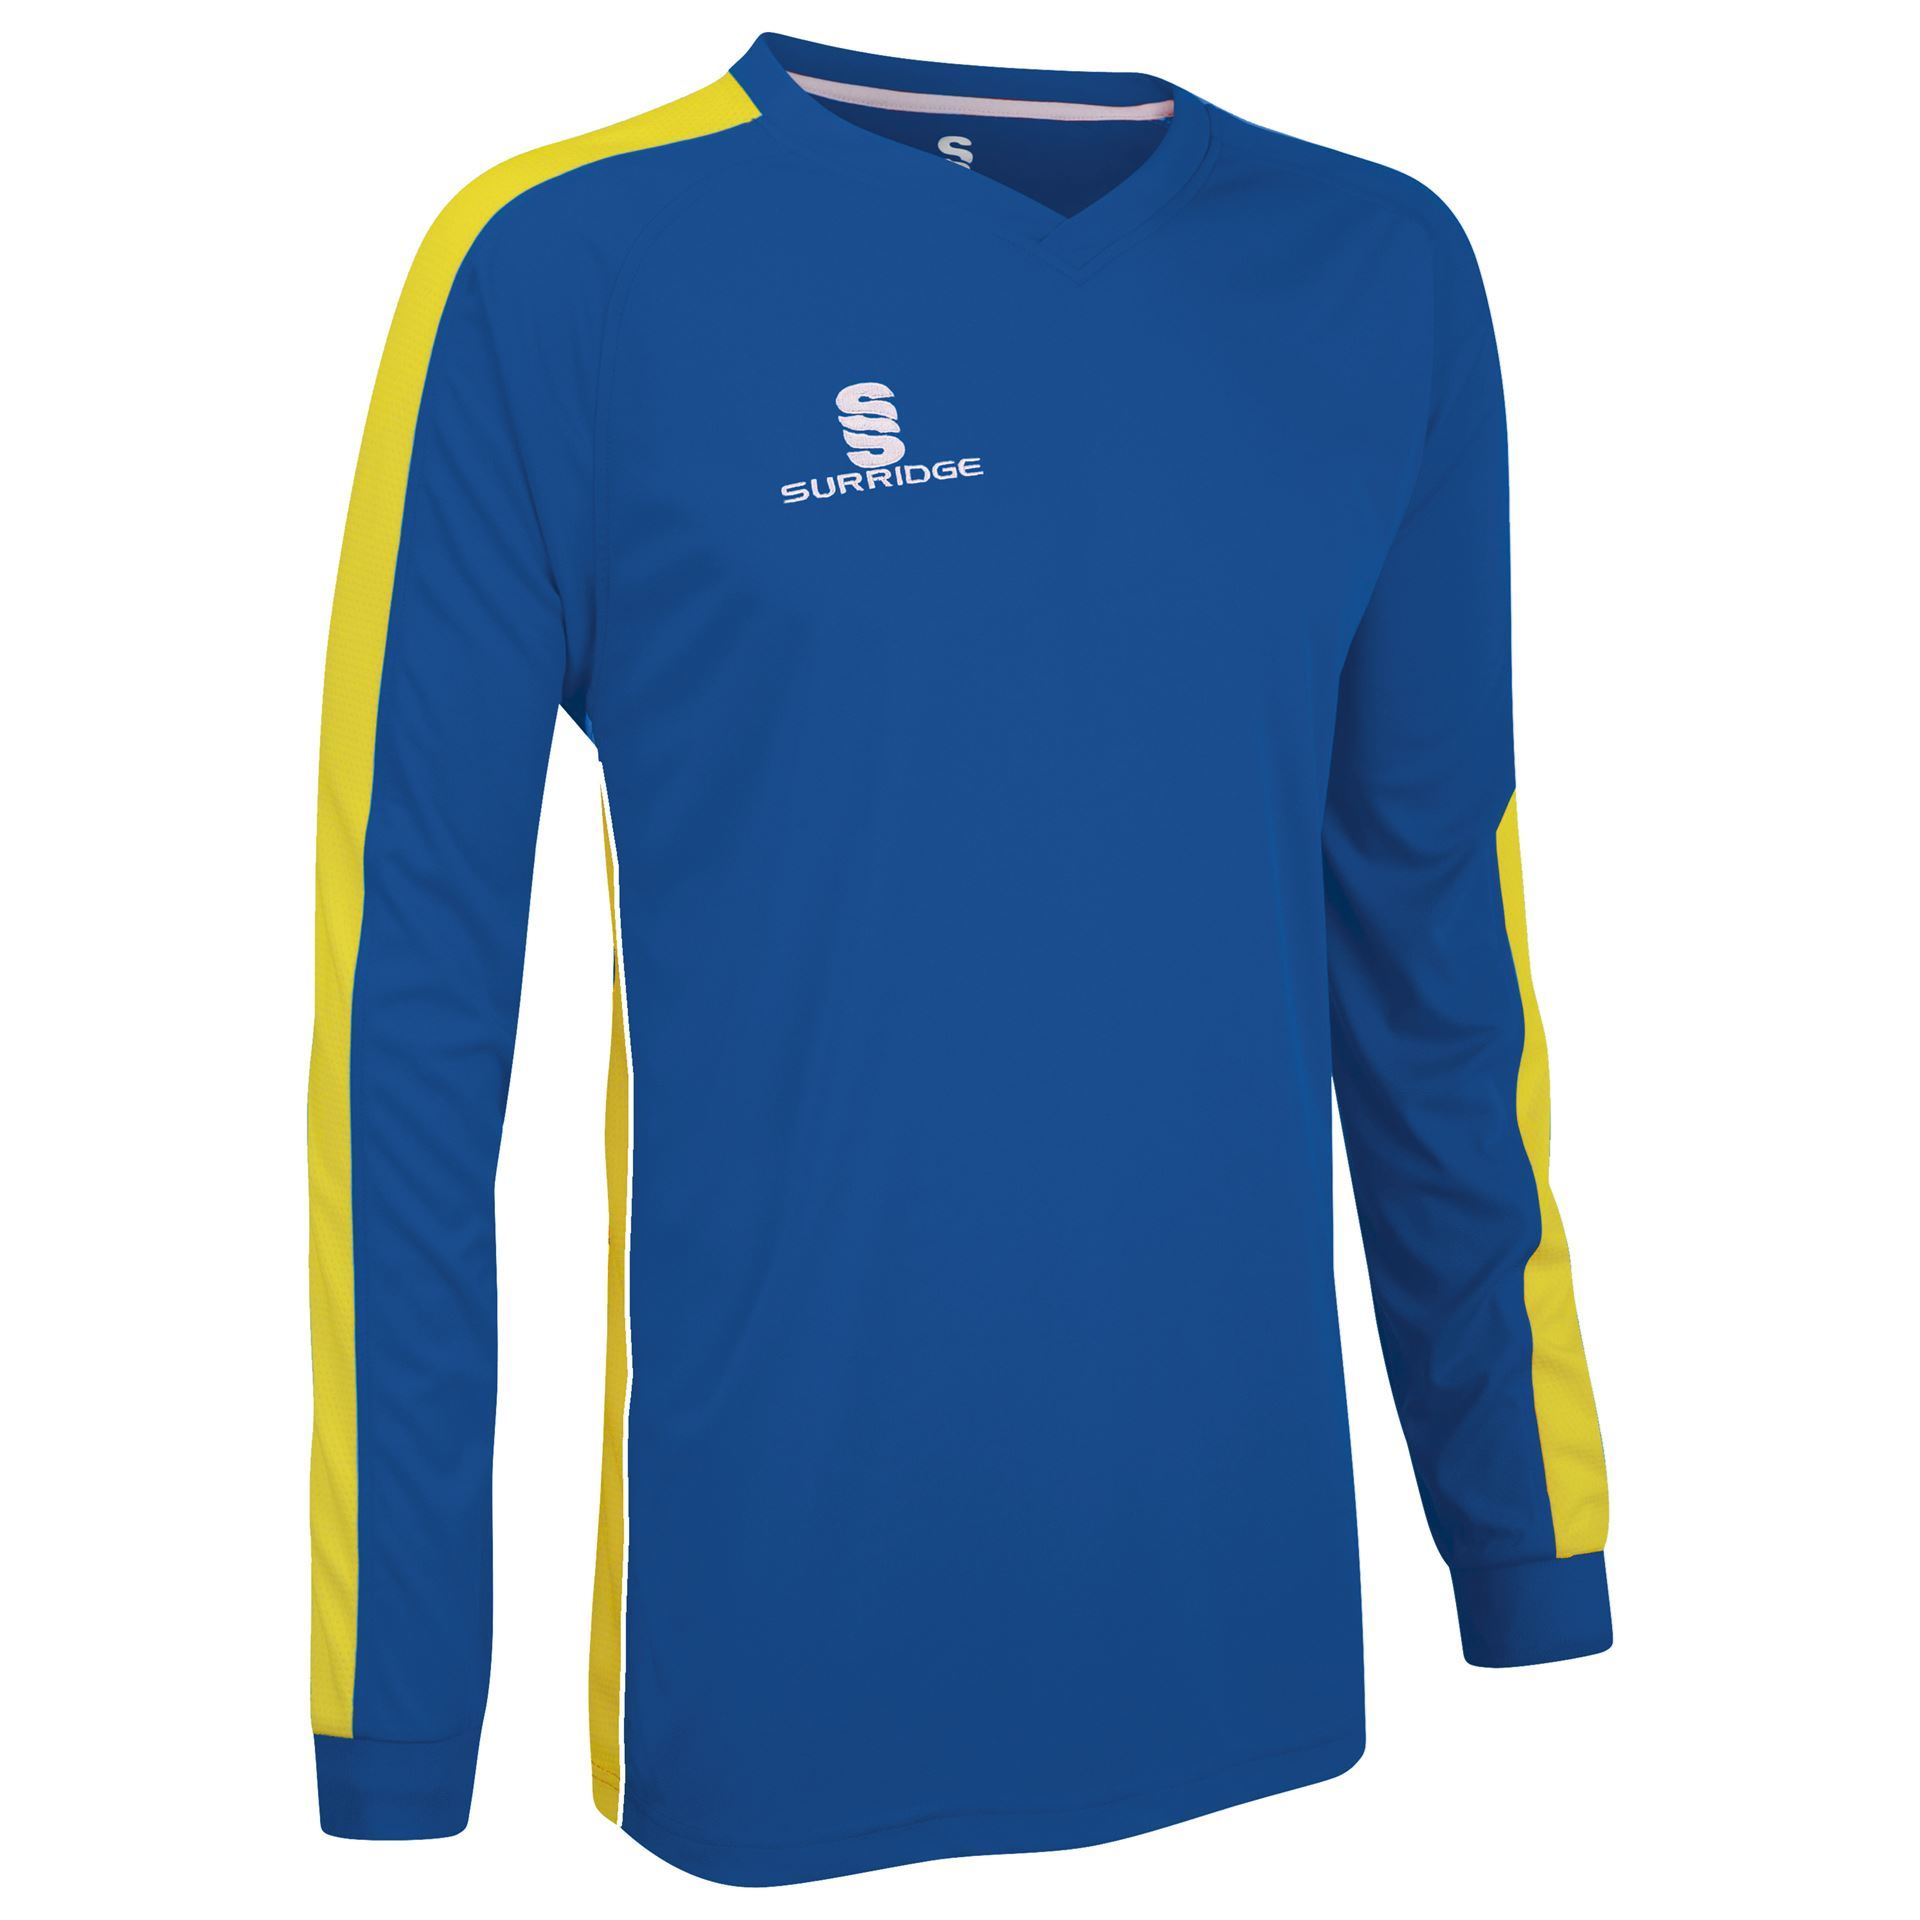 2ca15cff Surridge Sport - Champion Shirt Royal/Yellow